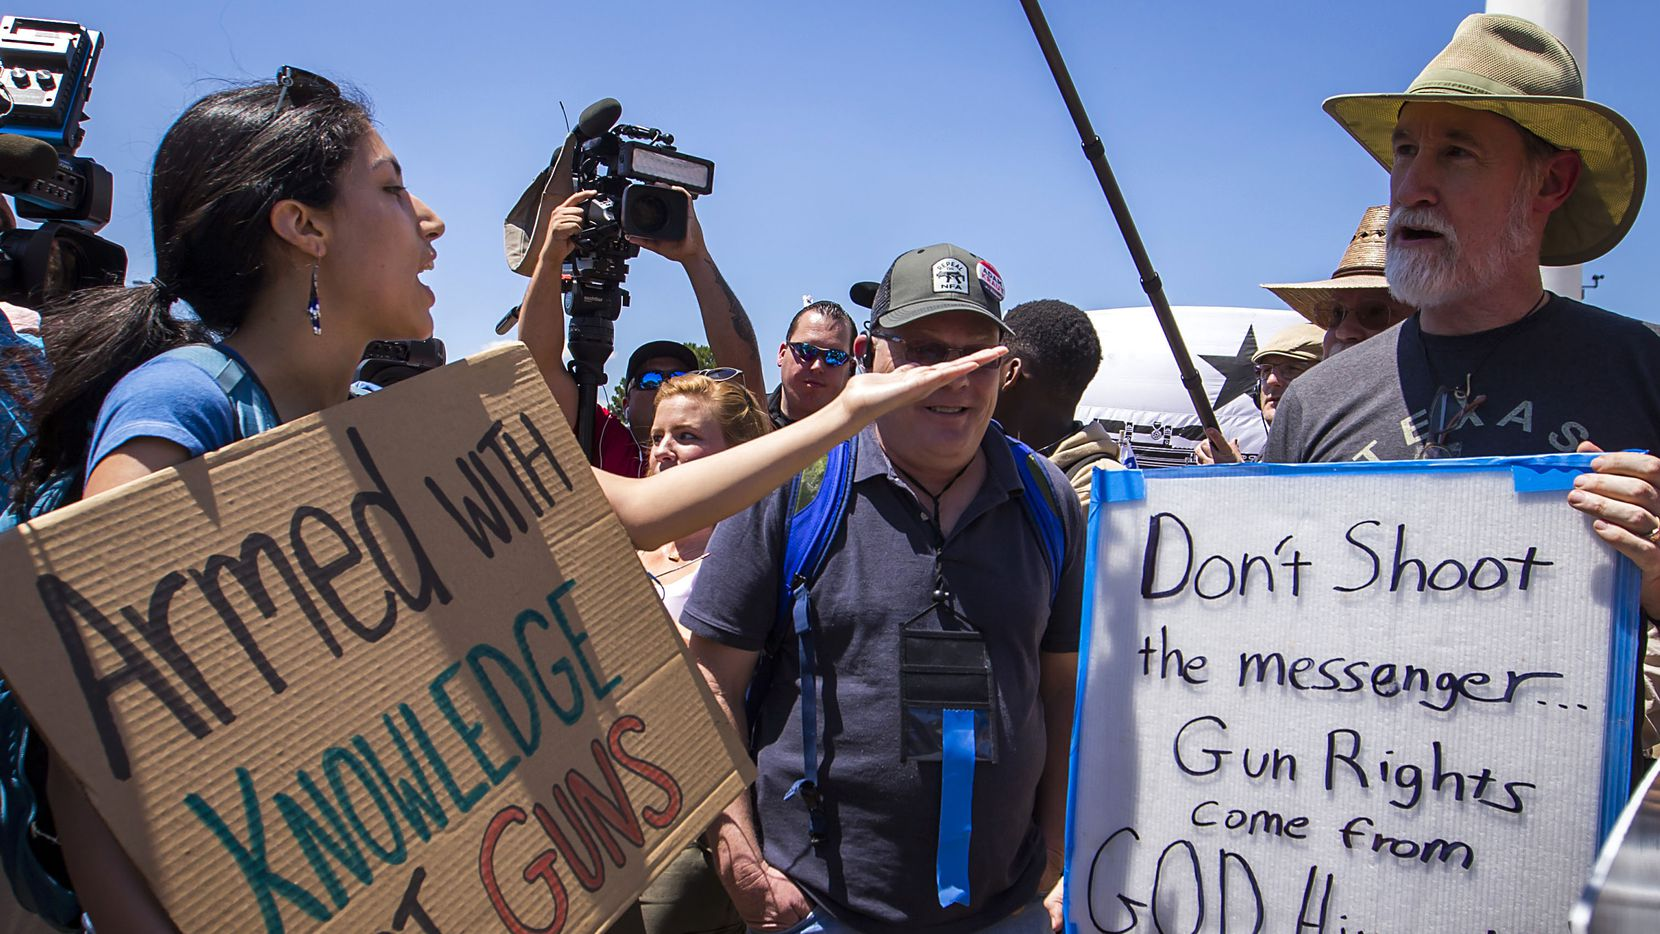 Gun rights advocates Drew Deal of Dallas (right) discusses the second amendment with a gun control advocate who would not give her name as dueling groups demonstrated outside Dallas City Hall during the NRA Annual Meeting & Exhibits at the Kay Bailey Hutchison Convention Center on Saturday, May 5, 2018, in Dallas. (Smiley N. Pool/The Dallas Morning News)